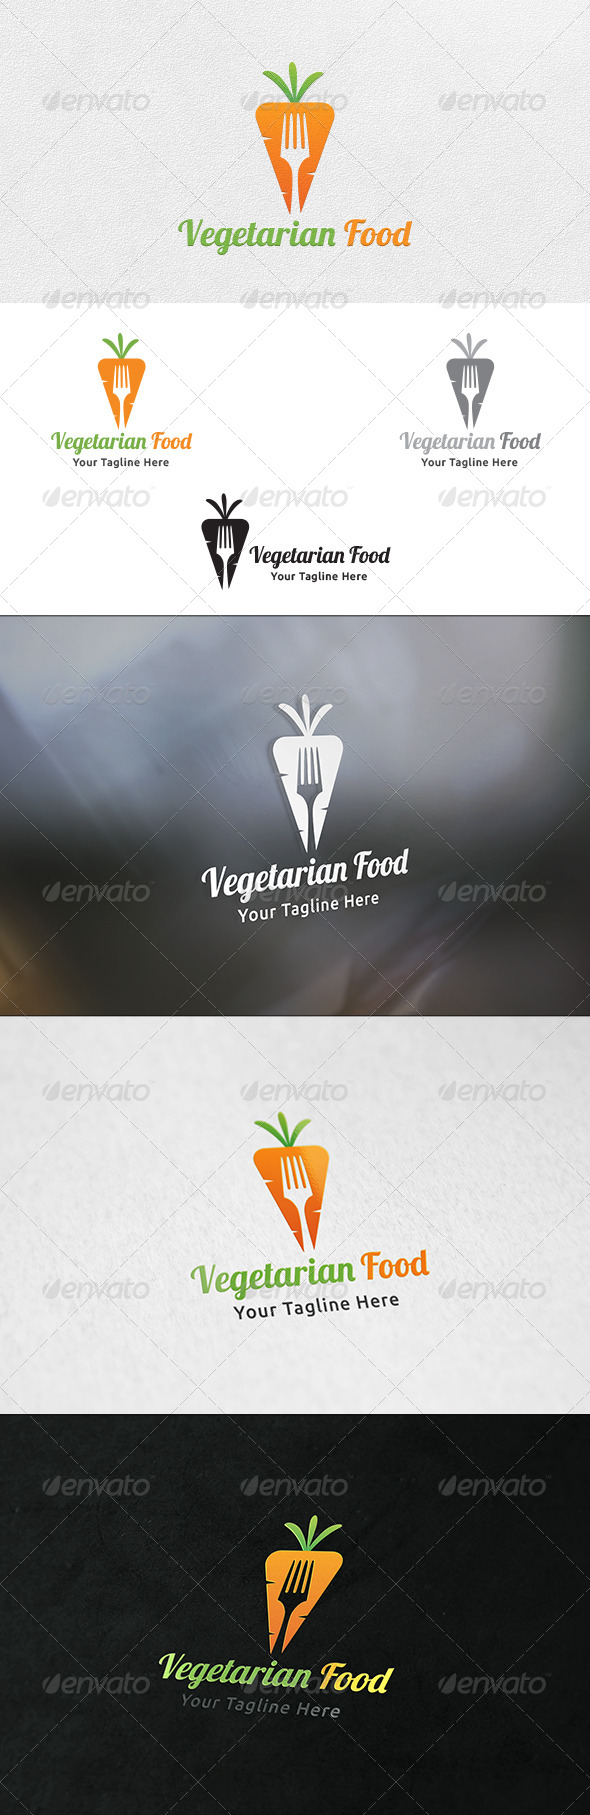 GraphicRiver Vegetarian Food Logo Template 6949847